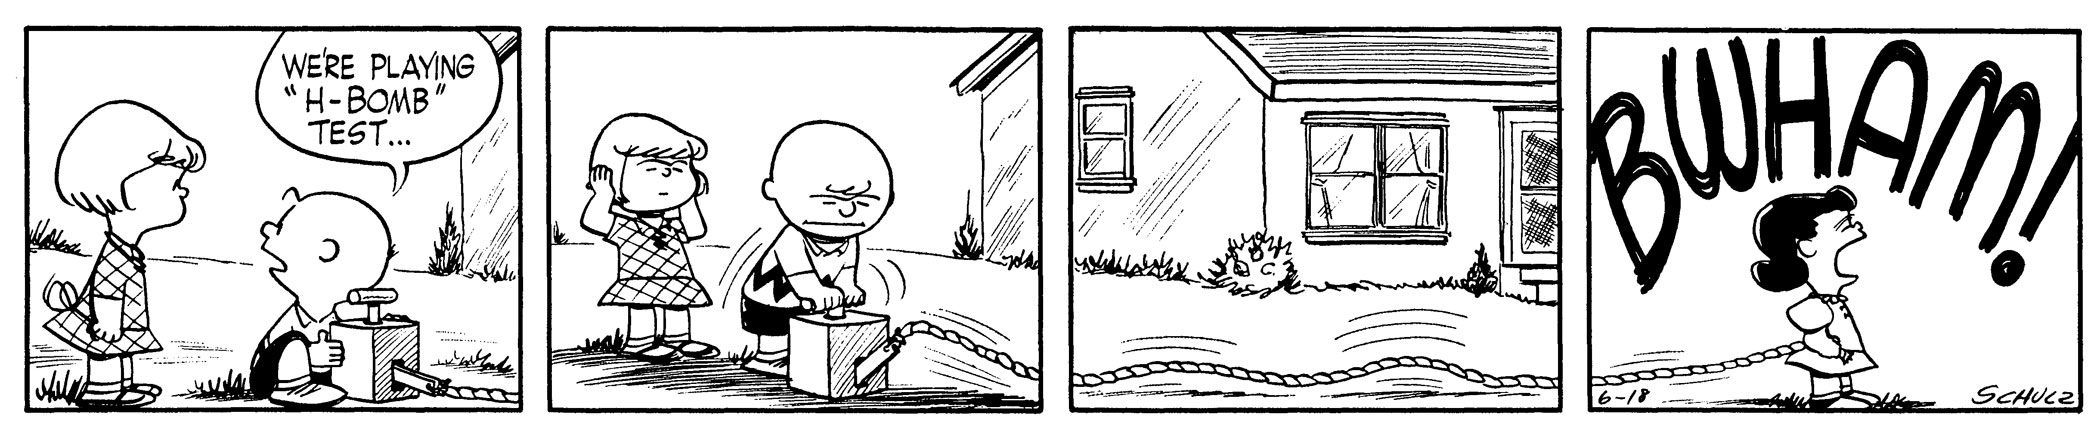 """Peanuts, June 18, 1954 The United States carried out the first test of a thermonuclear weapon in 1952. Russia tested a hydrogen bomb in 1953, and several other countries soon followed suit. The innocuous """"H-Bomb"""" game played by Charlie Brown, Lucy, and Patty, contrasts their innocence with the real threat of global atomic warfare."""